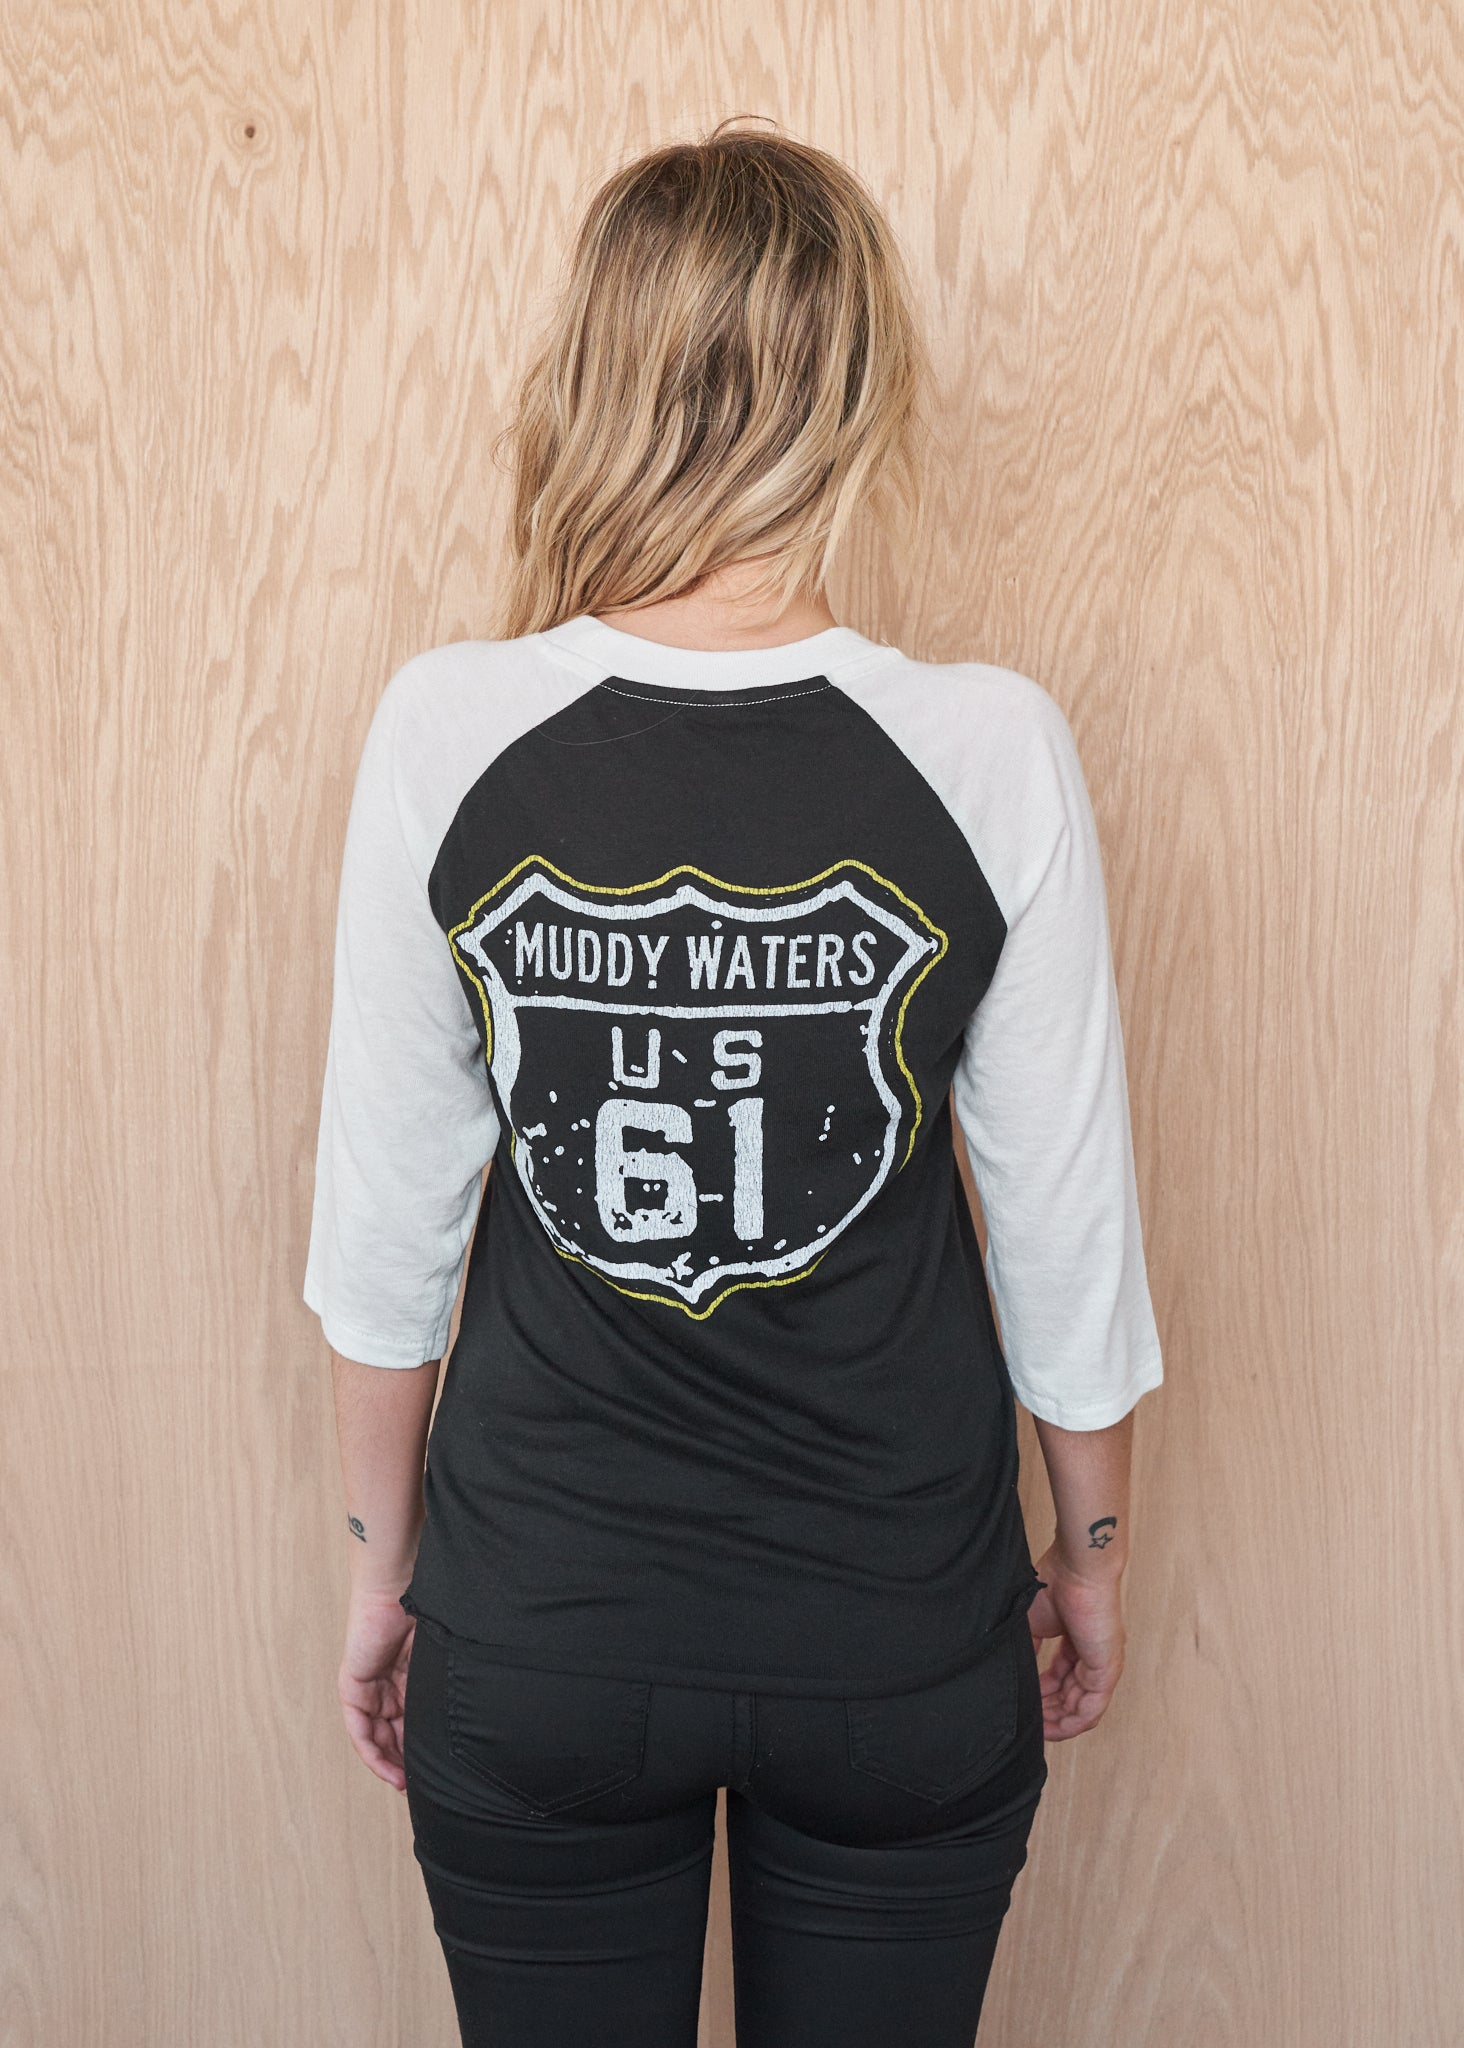 Muddy Waters Highway 61 Baseball Tee - Baseball Tee - Midnight Rider